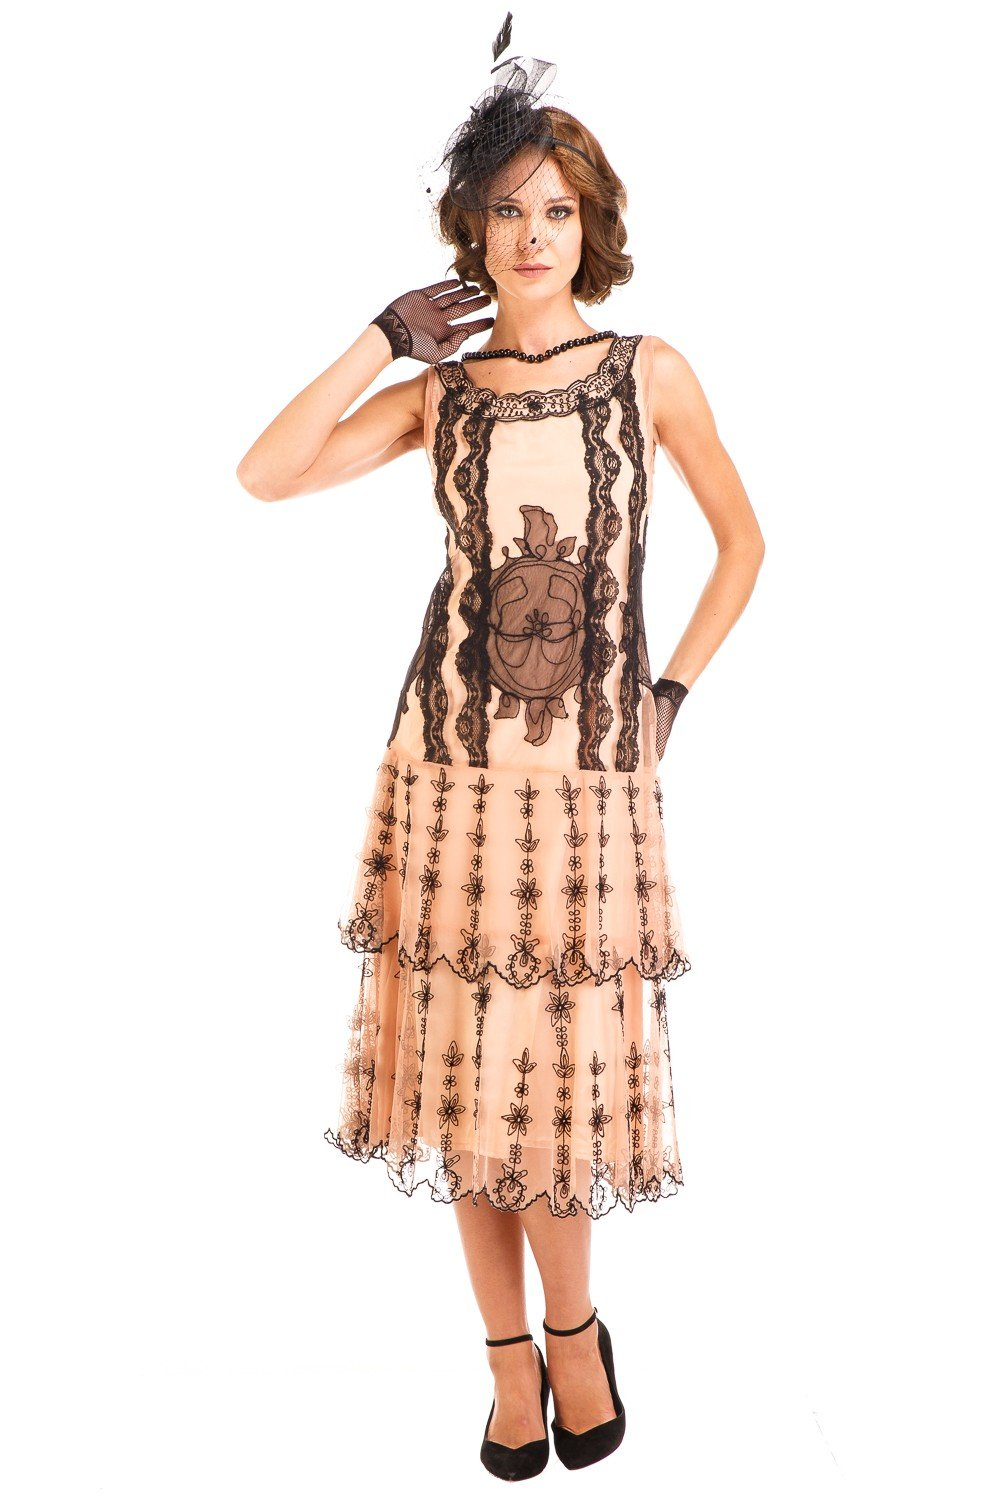 1920s Day Dresses, Tea Dresses, Mature Dresses with Sleeves Eva 1920s Flapper Style Dress in Peach-Black by Nataya $254.00 AT vintagedancer.com